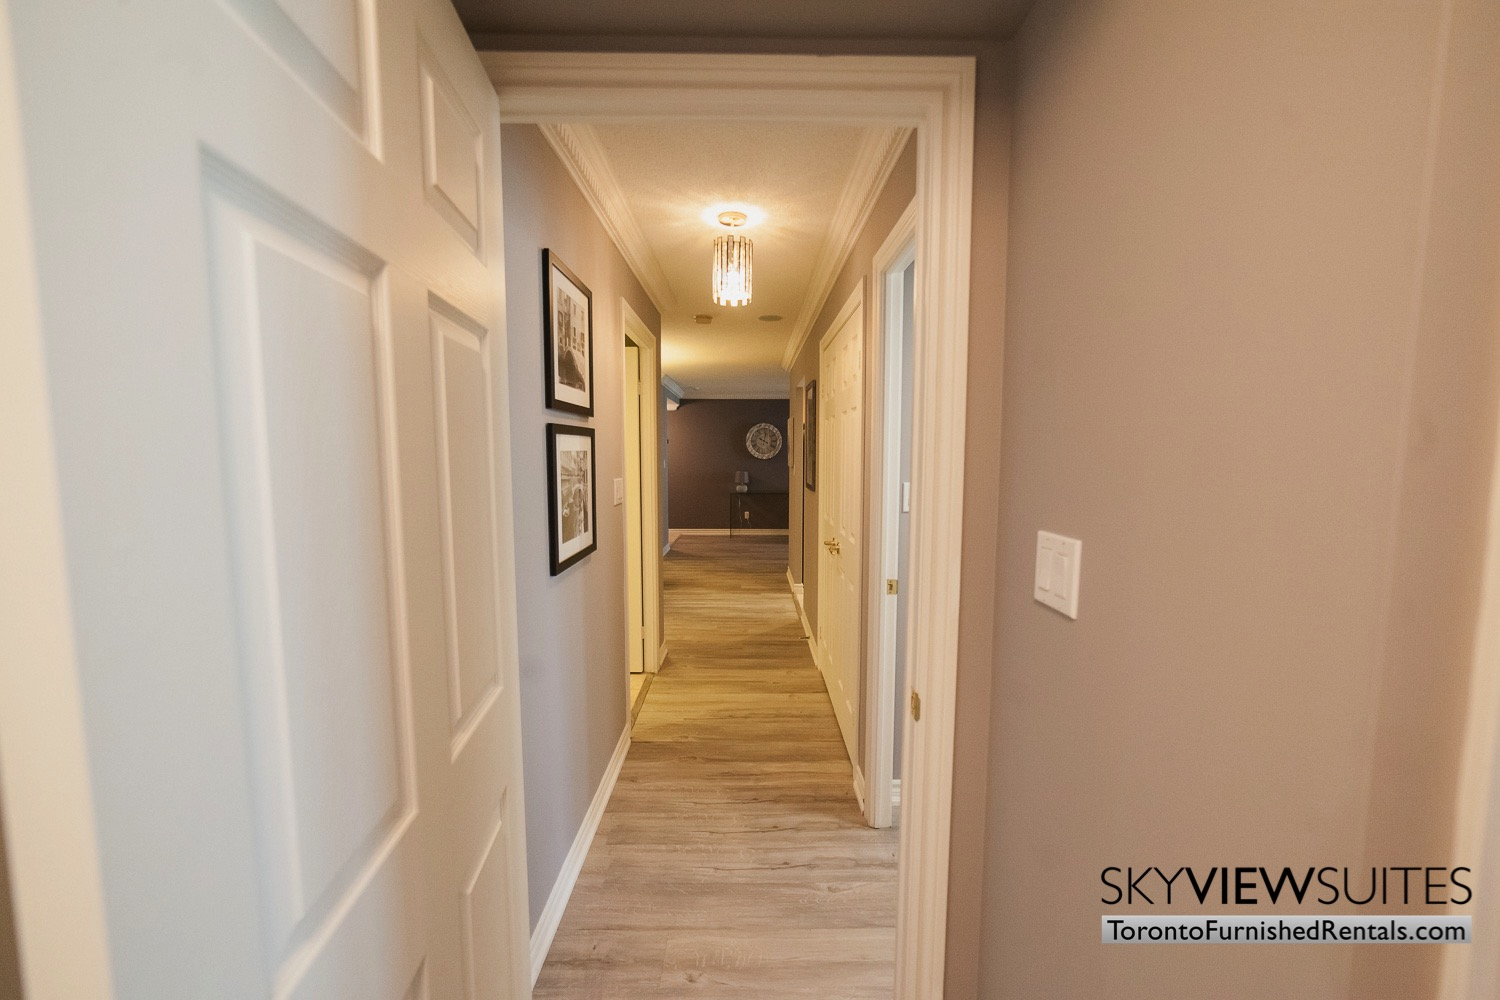 Qwest executive rental Toronto hallway